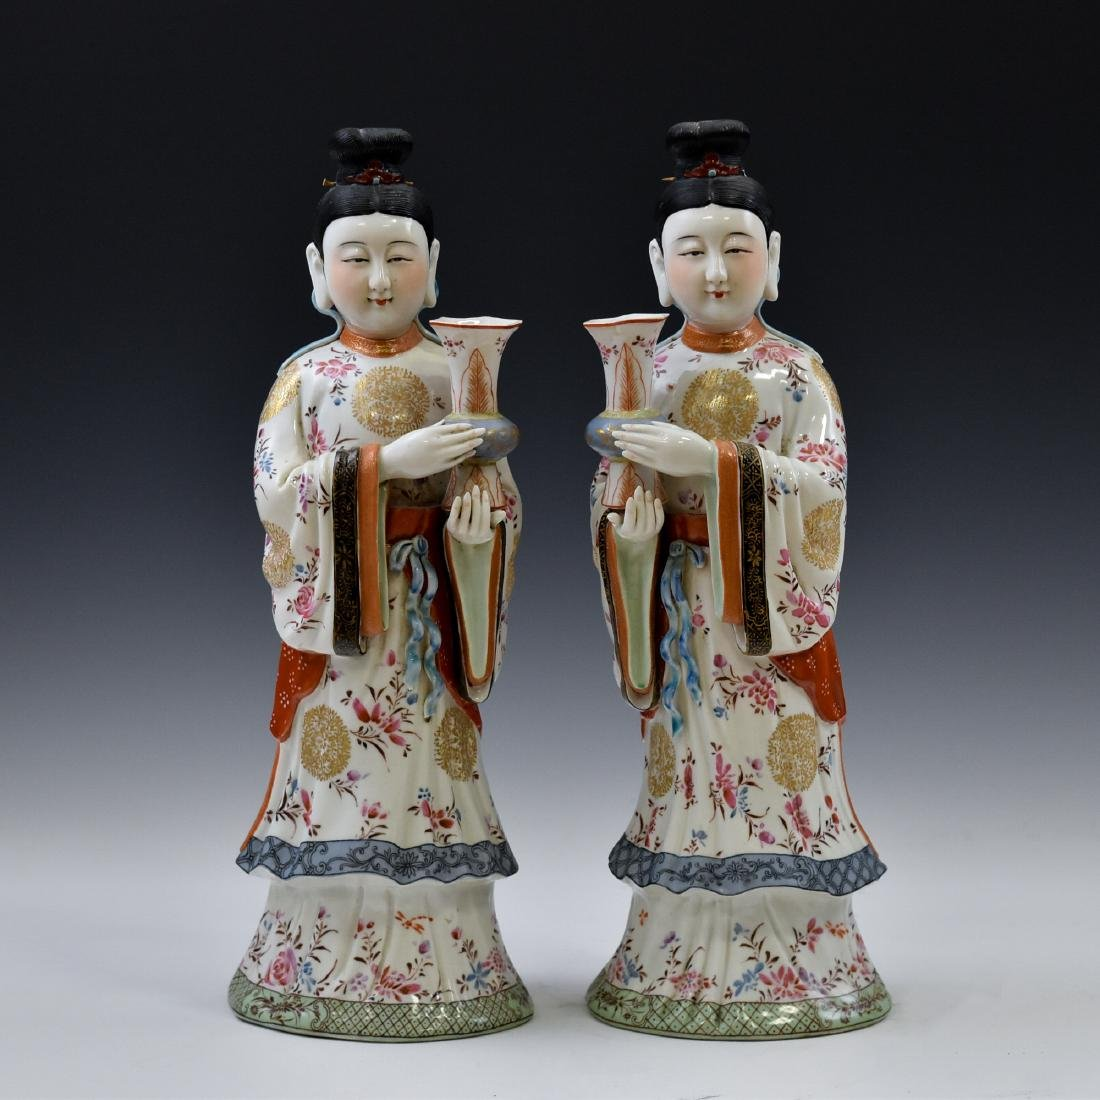 20TH C PAIR OF CHINESE FAMILLE ROSE PORCELAIN FIGURINES